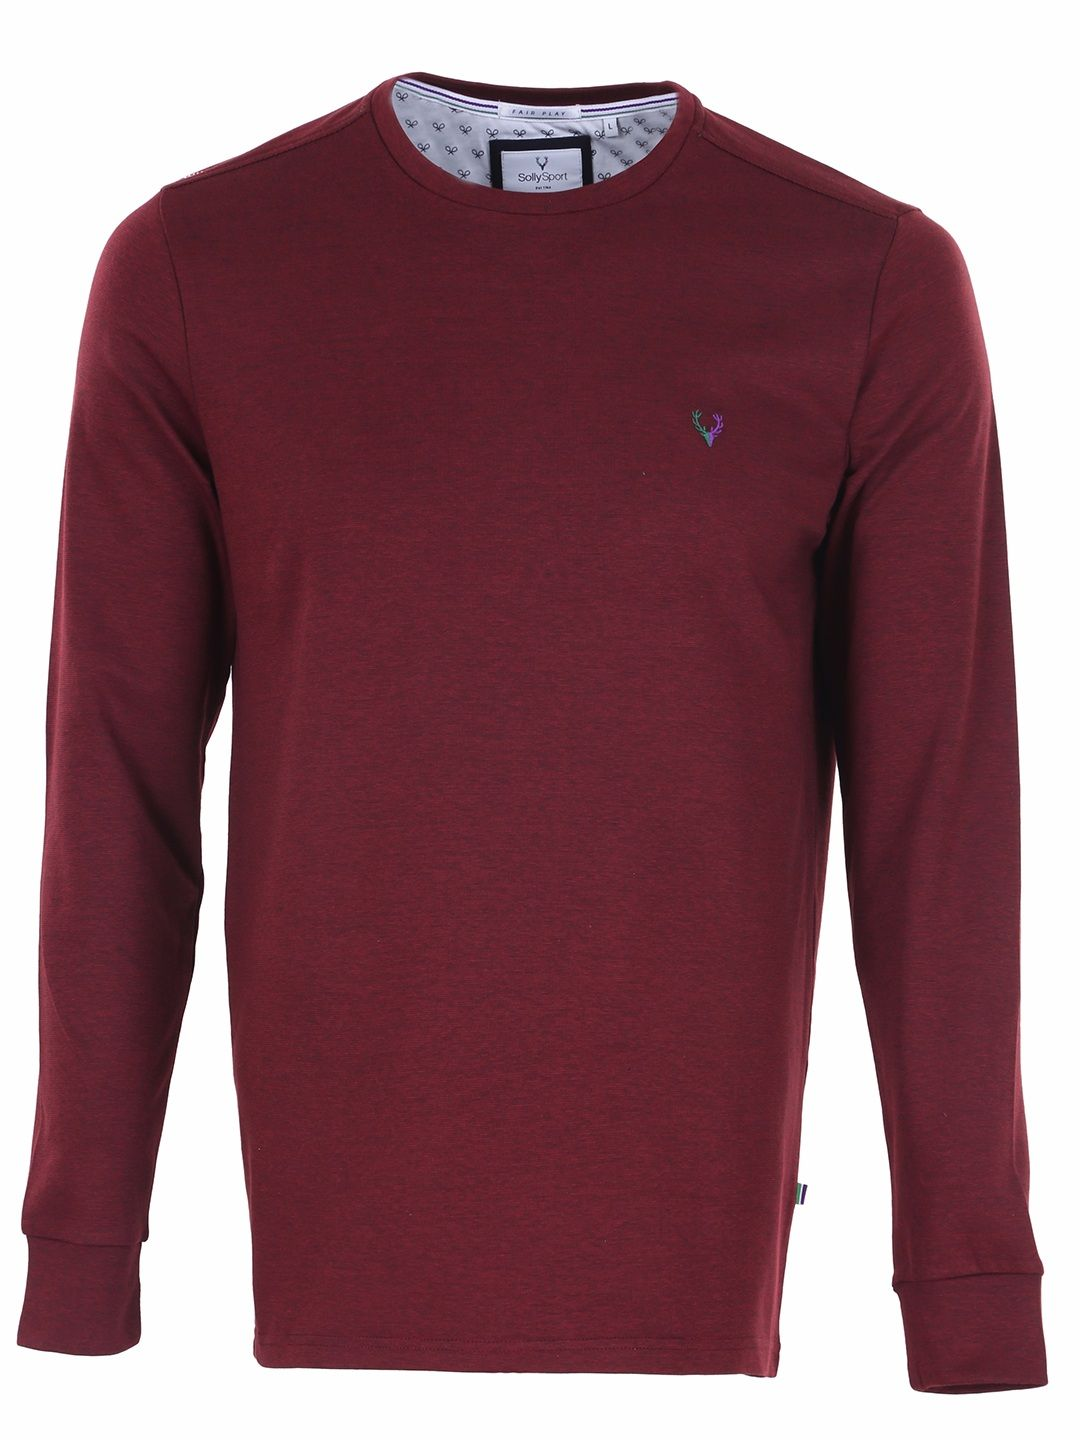 a39bdd3f Allen Solly Maroon Cotton Full Sleeves Plain Slim Fit Mens T Shirt ...